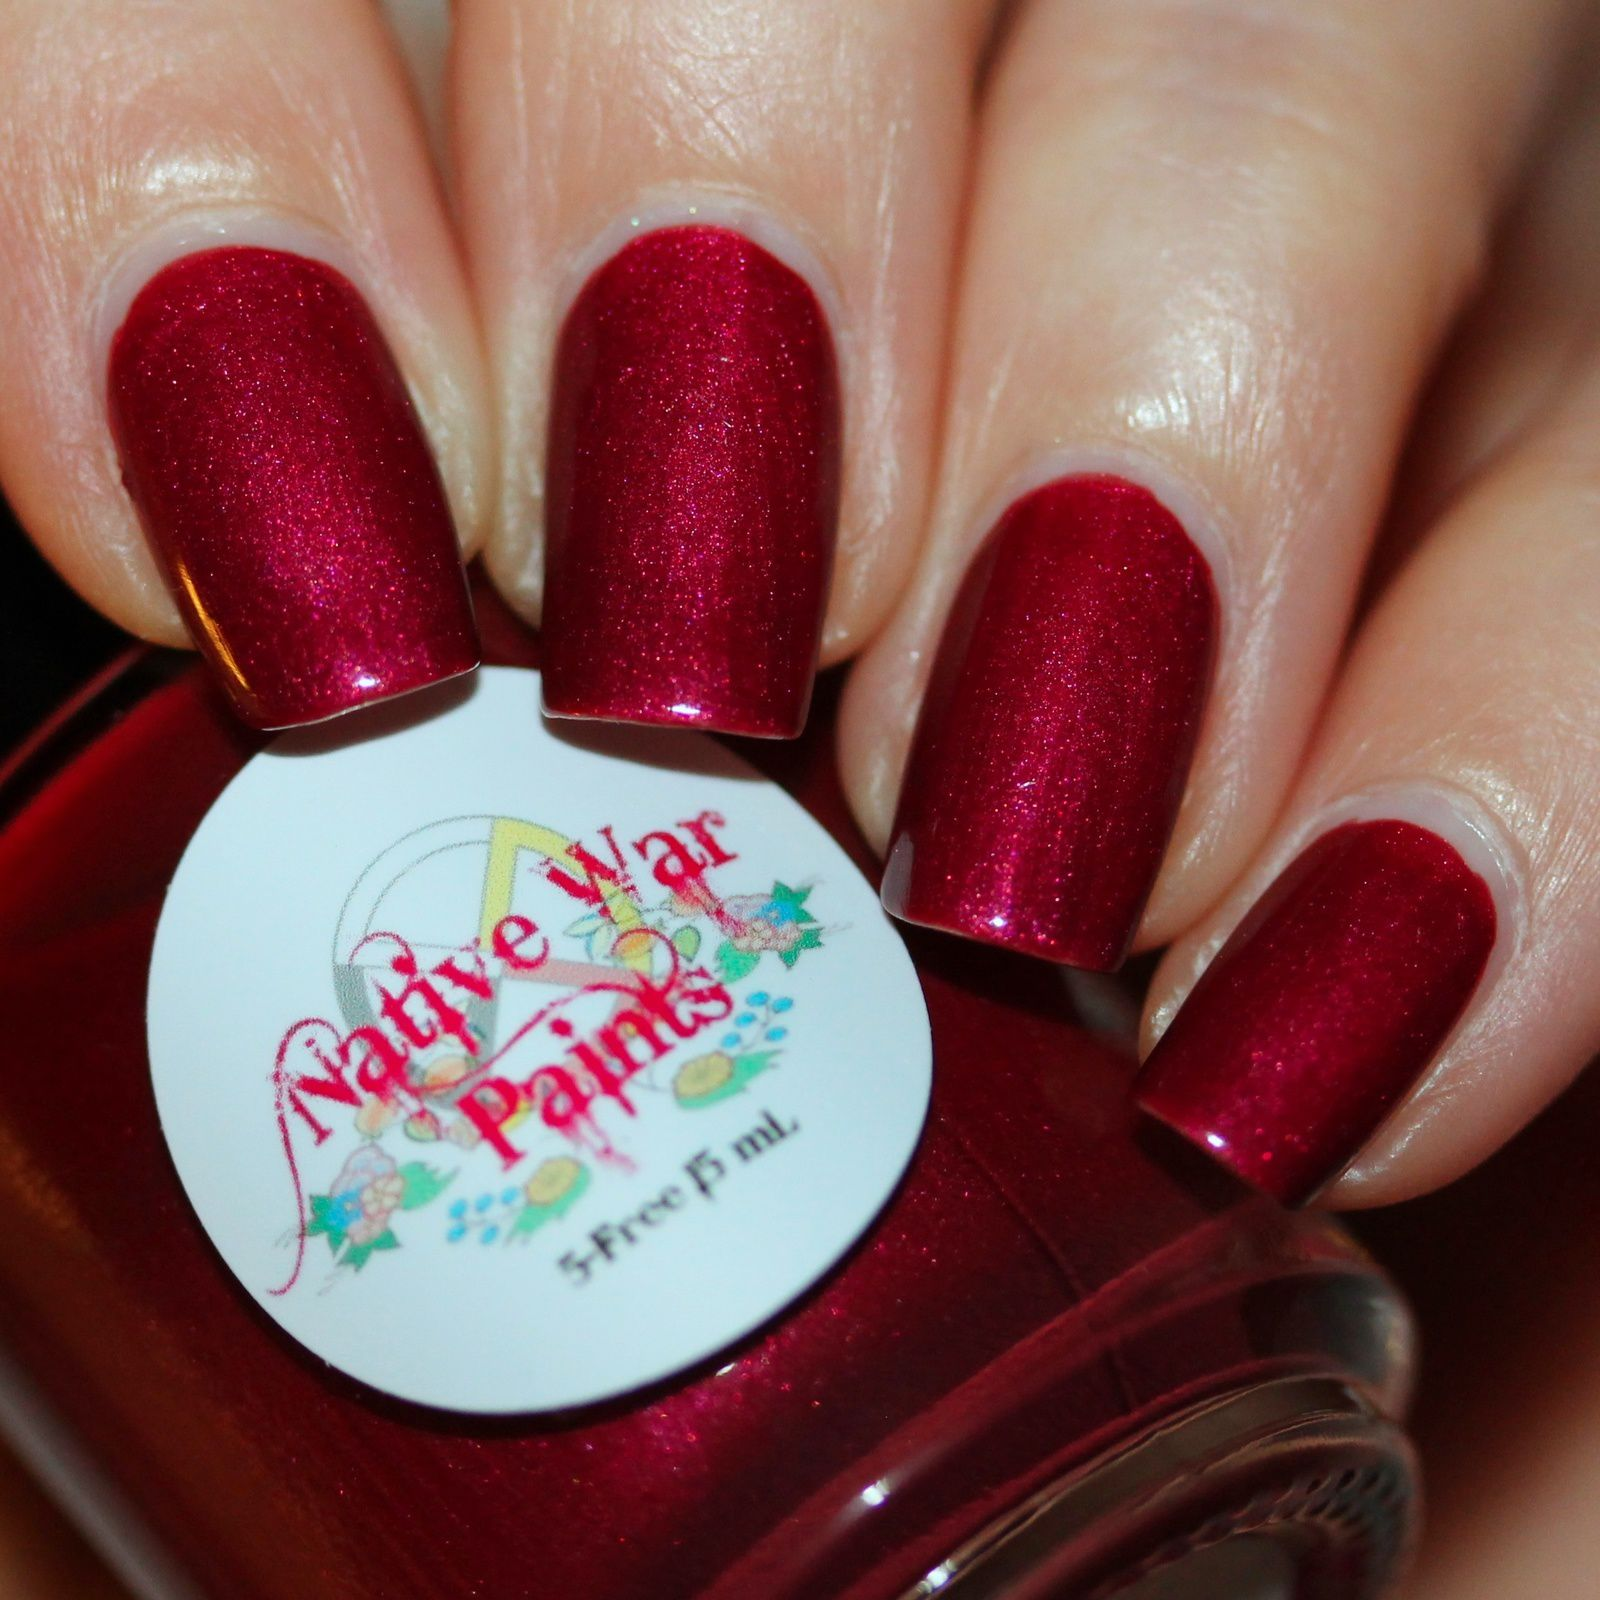 Essie Protein Base Coat / Native War Paints You Oughta Know / Sally Hansen Miracle Gel Top Coat